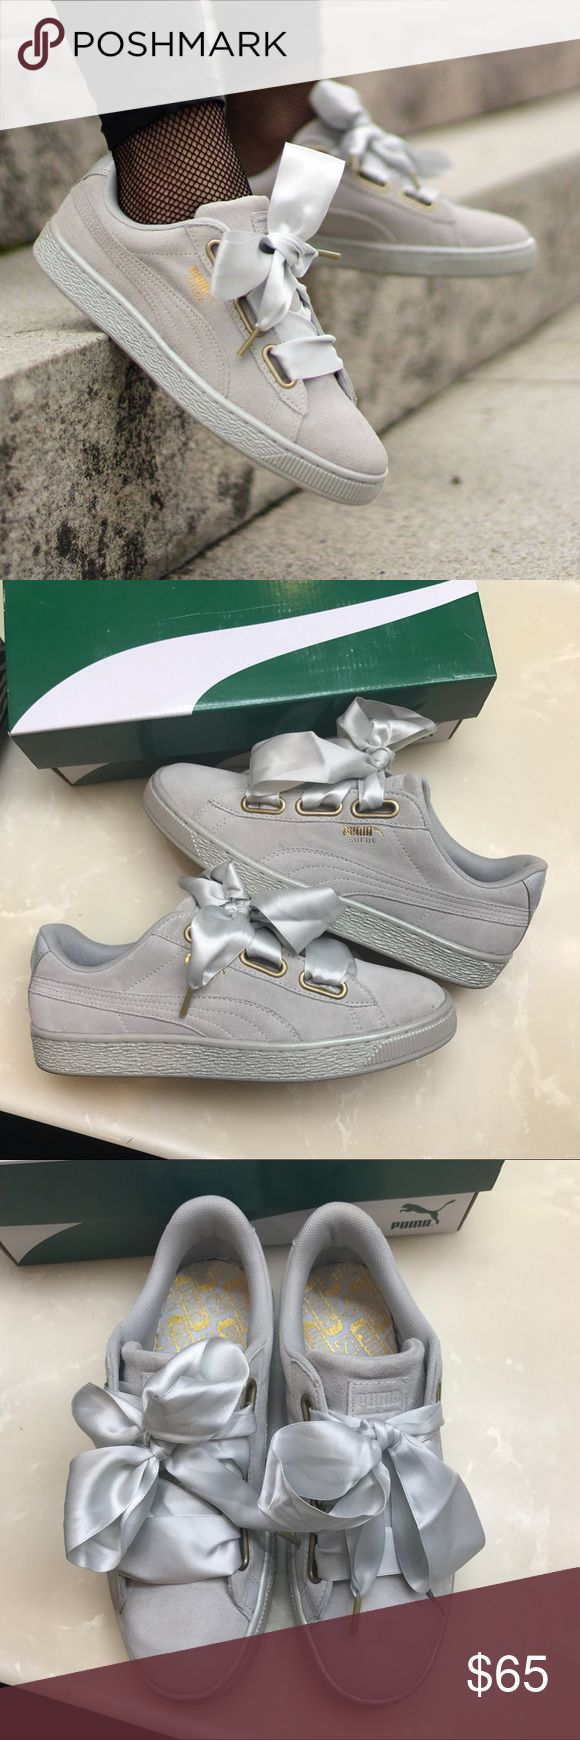 25 best ideas about puma suede grey on pinterest puma suede puma suede grise and puma basket. Black Bedroom Furniture Sets. Home Design Ideas